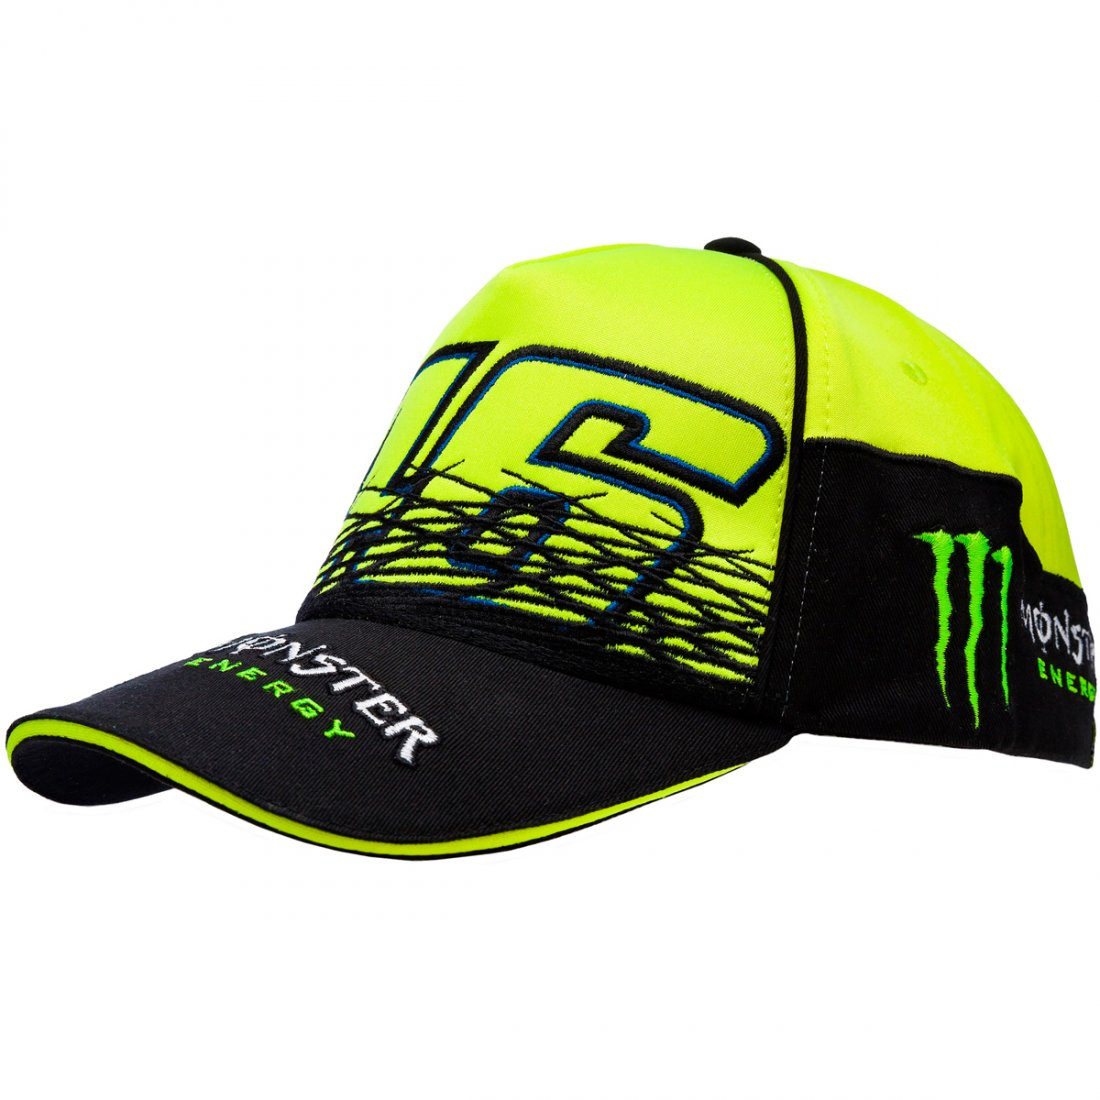 VR46 Monster Monza Rossi VR 46 274628 cf5a6853125